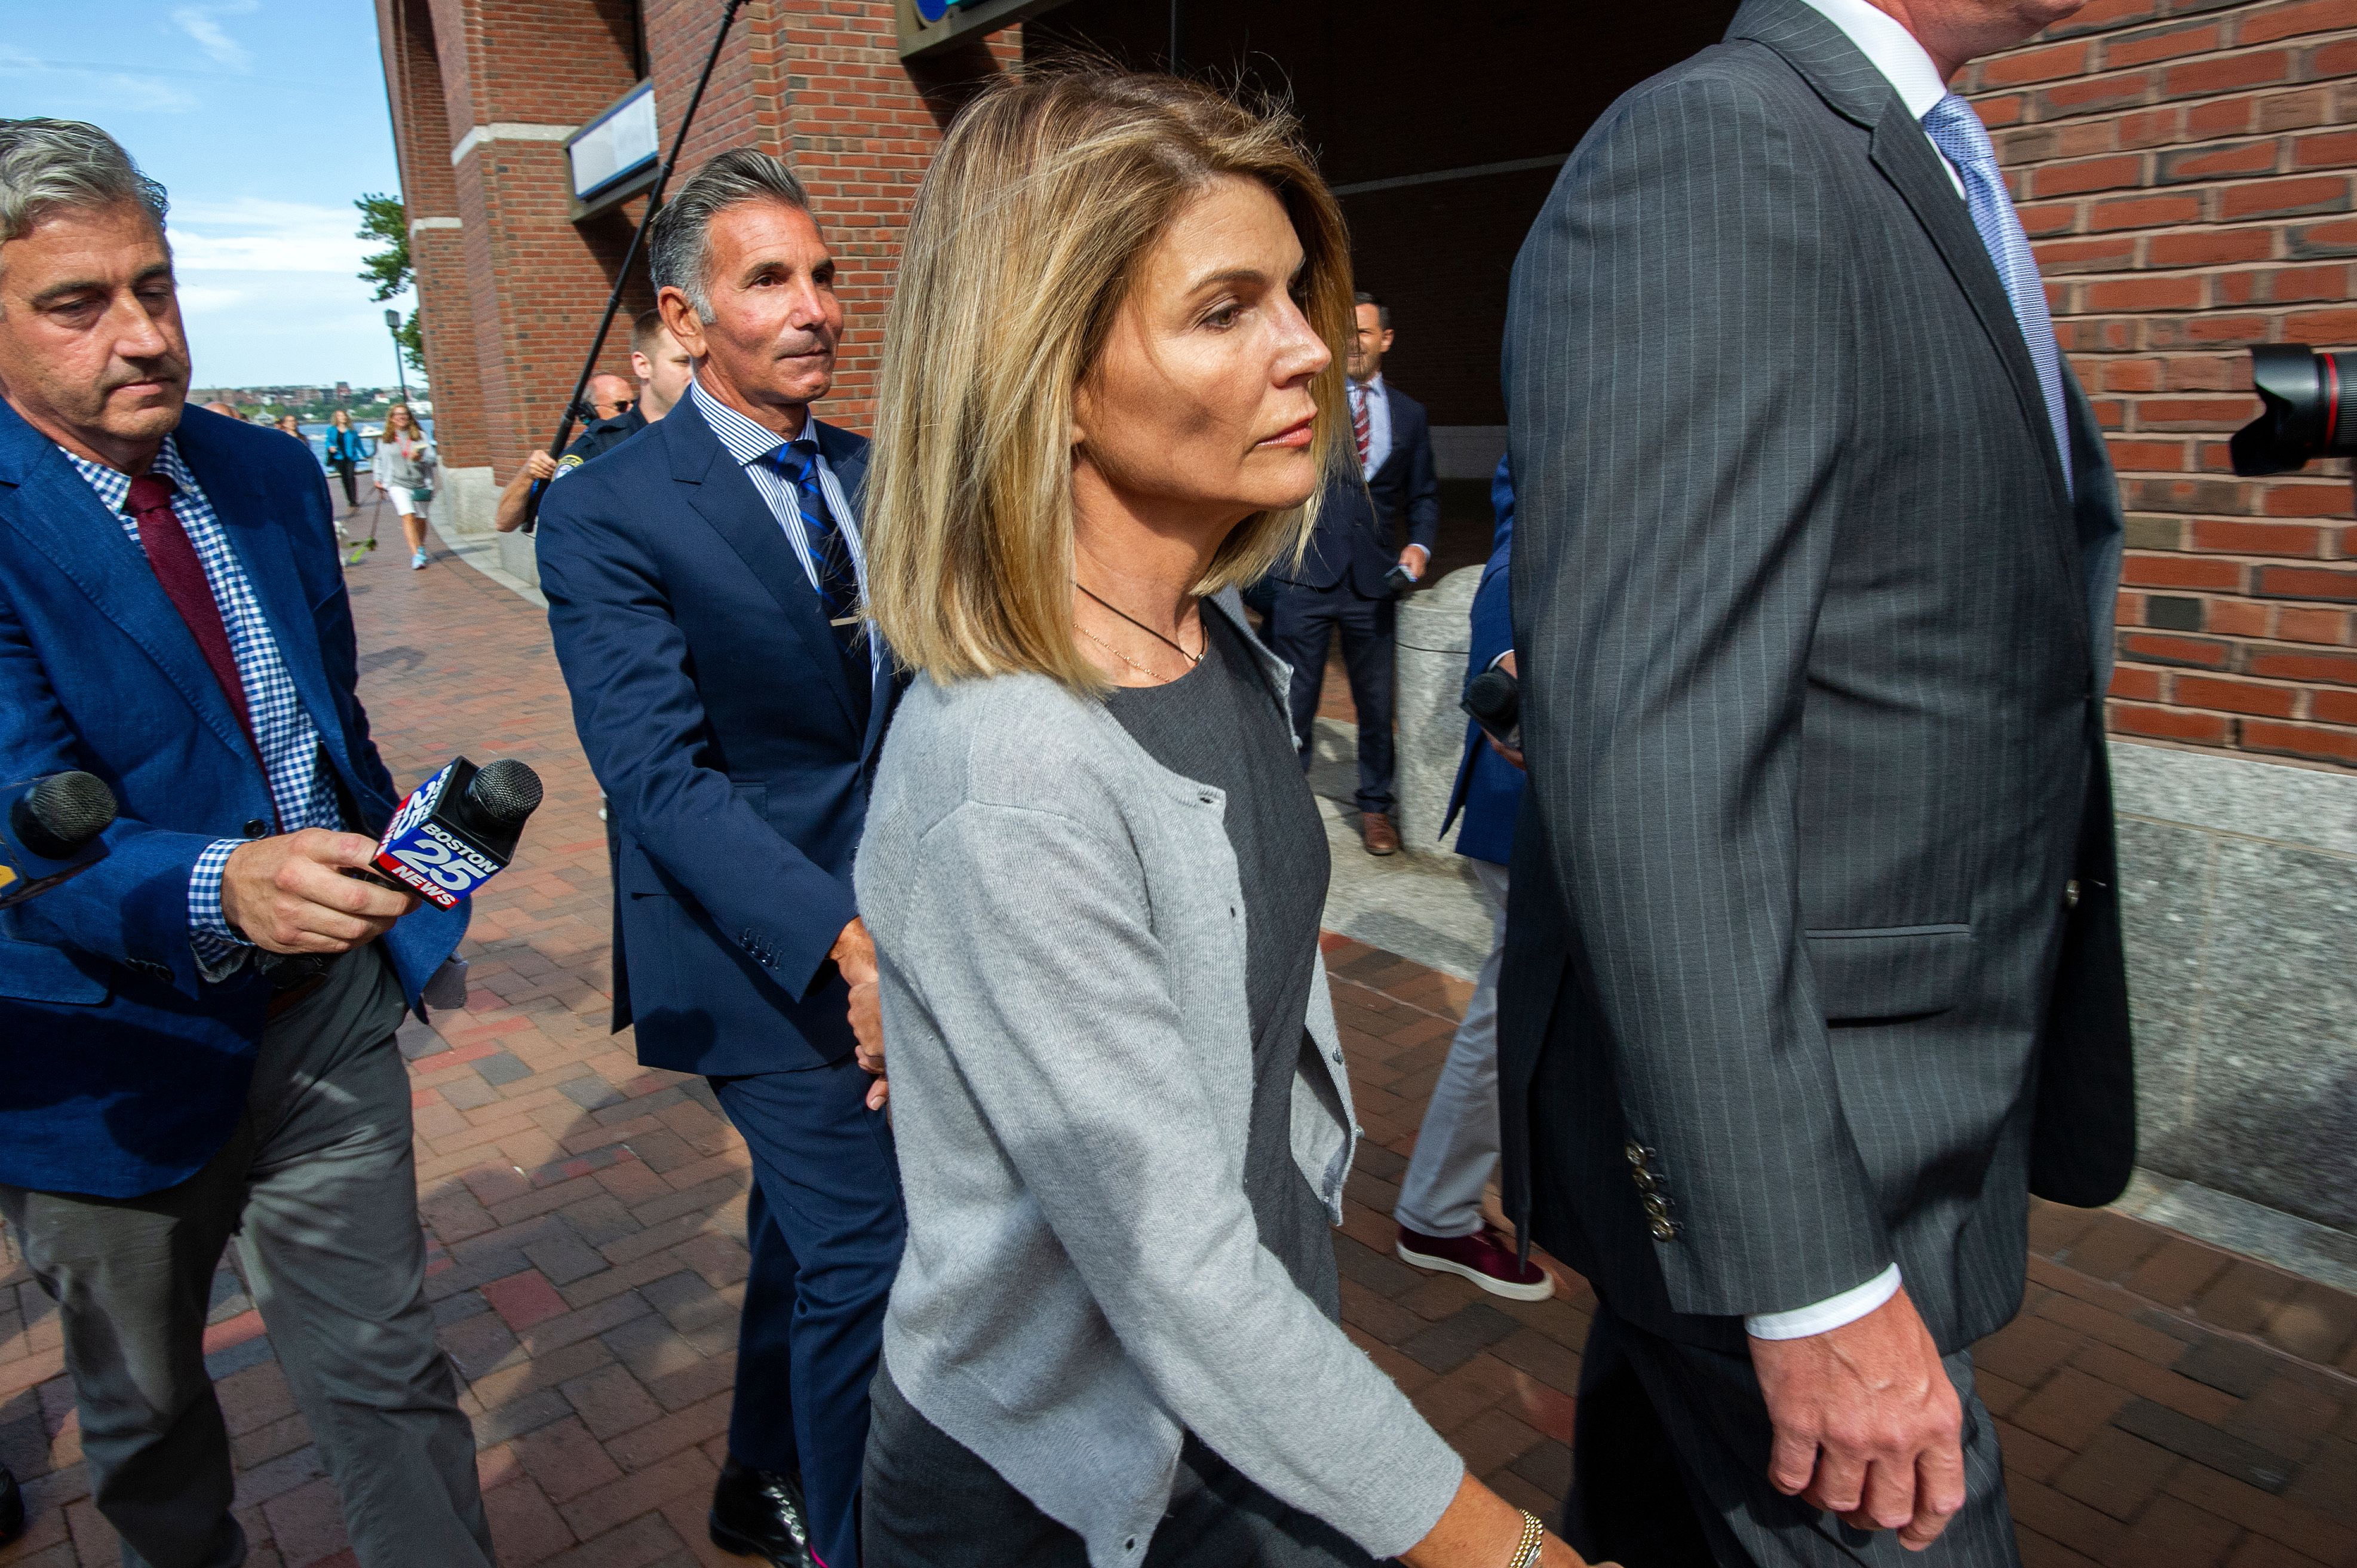 Lori Loughlin avoids arraignment after judge accepts not guilty plea to bribery charge - Personal Liberty®